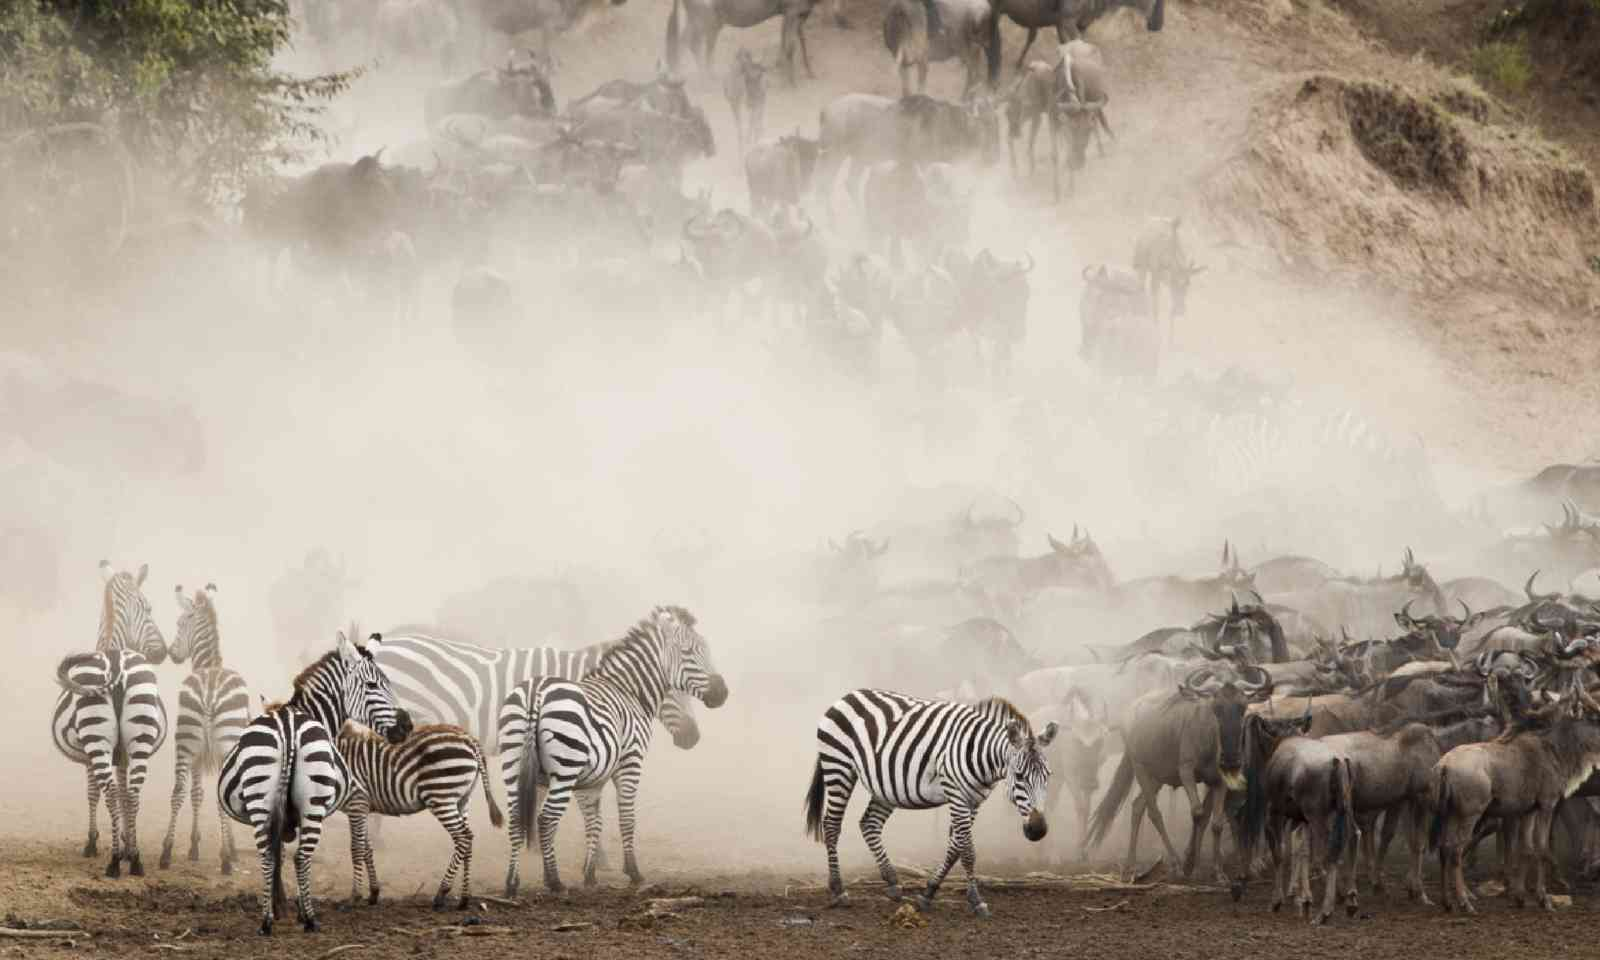 Zebra and Wildebeest crossing in the Masai Mara (Shutterstock)